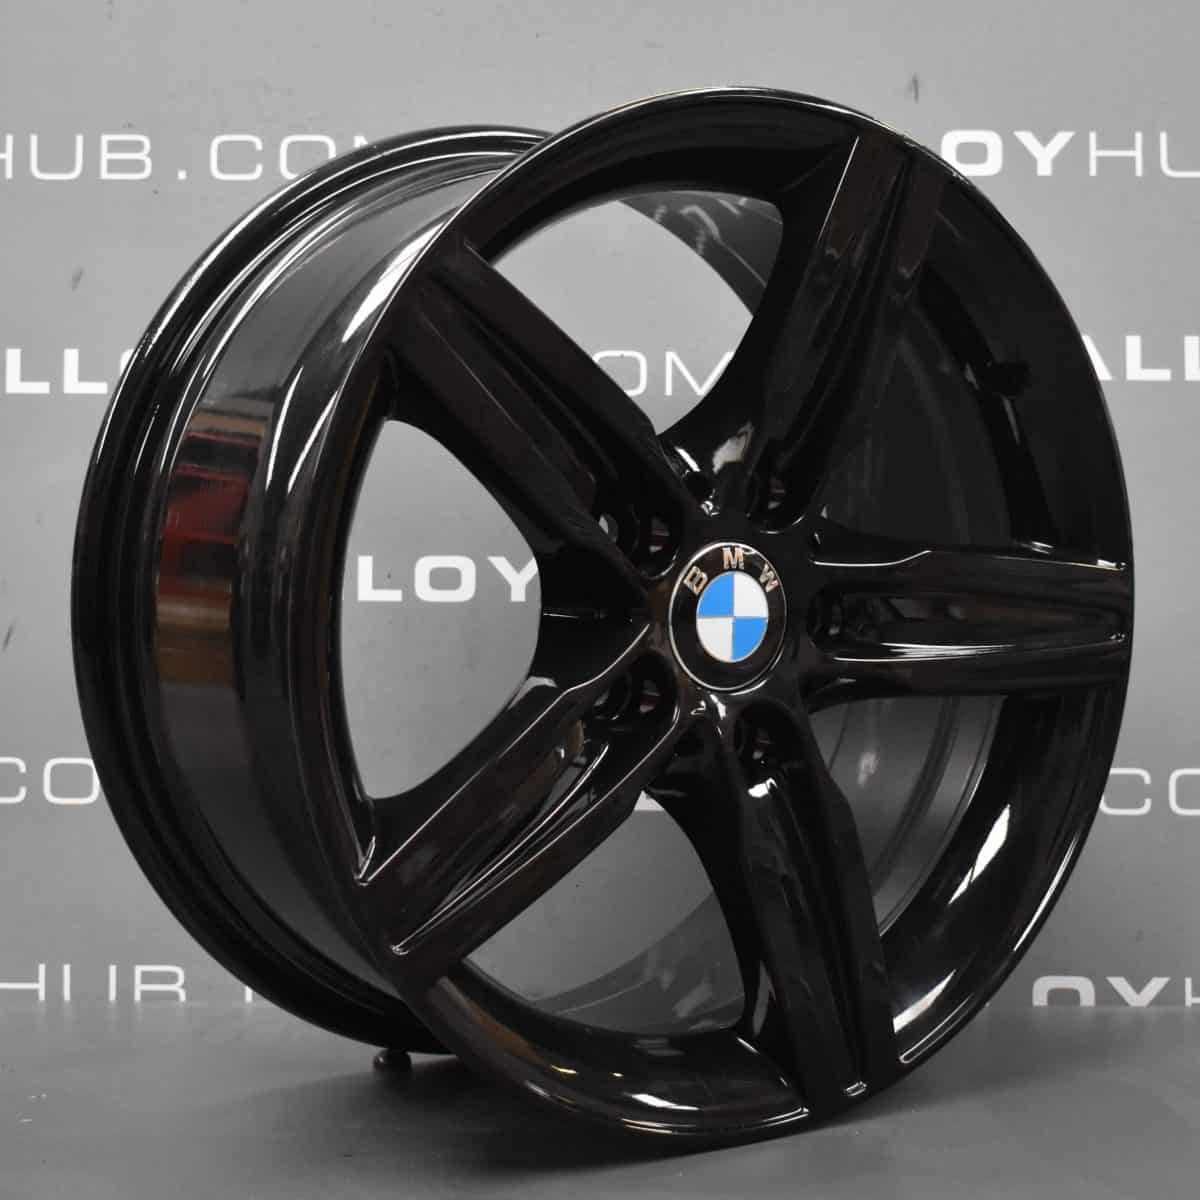 """Genuine BMW 1/2 Series F20 F22 Style 379 Sport 5 17"""" Inch Alloy Wheels with Gloss Black Finish 36116850151"""